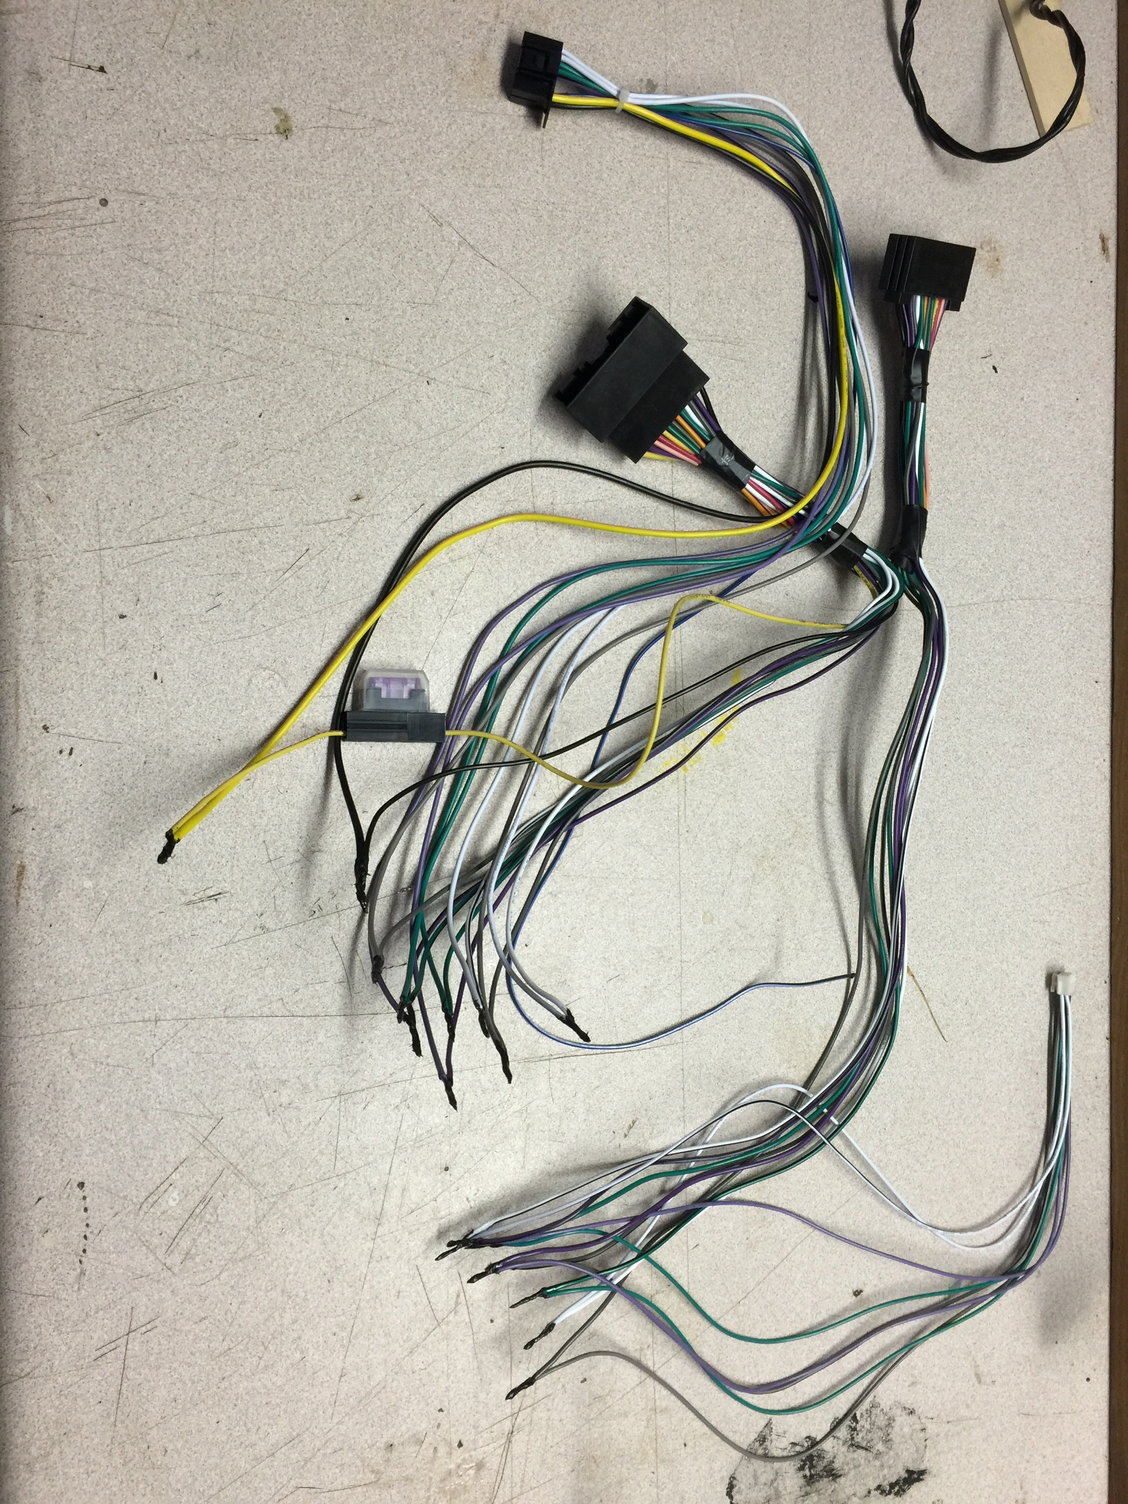 hight resolution of i just soldered the wires together from the parrot harness and pioneer amp however a prior post stated to ground to the metal frame